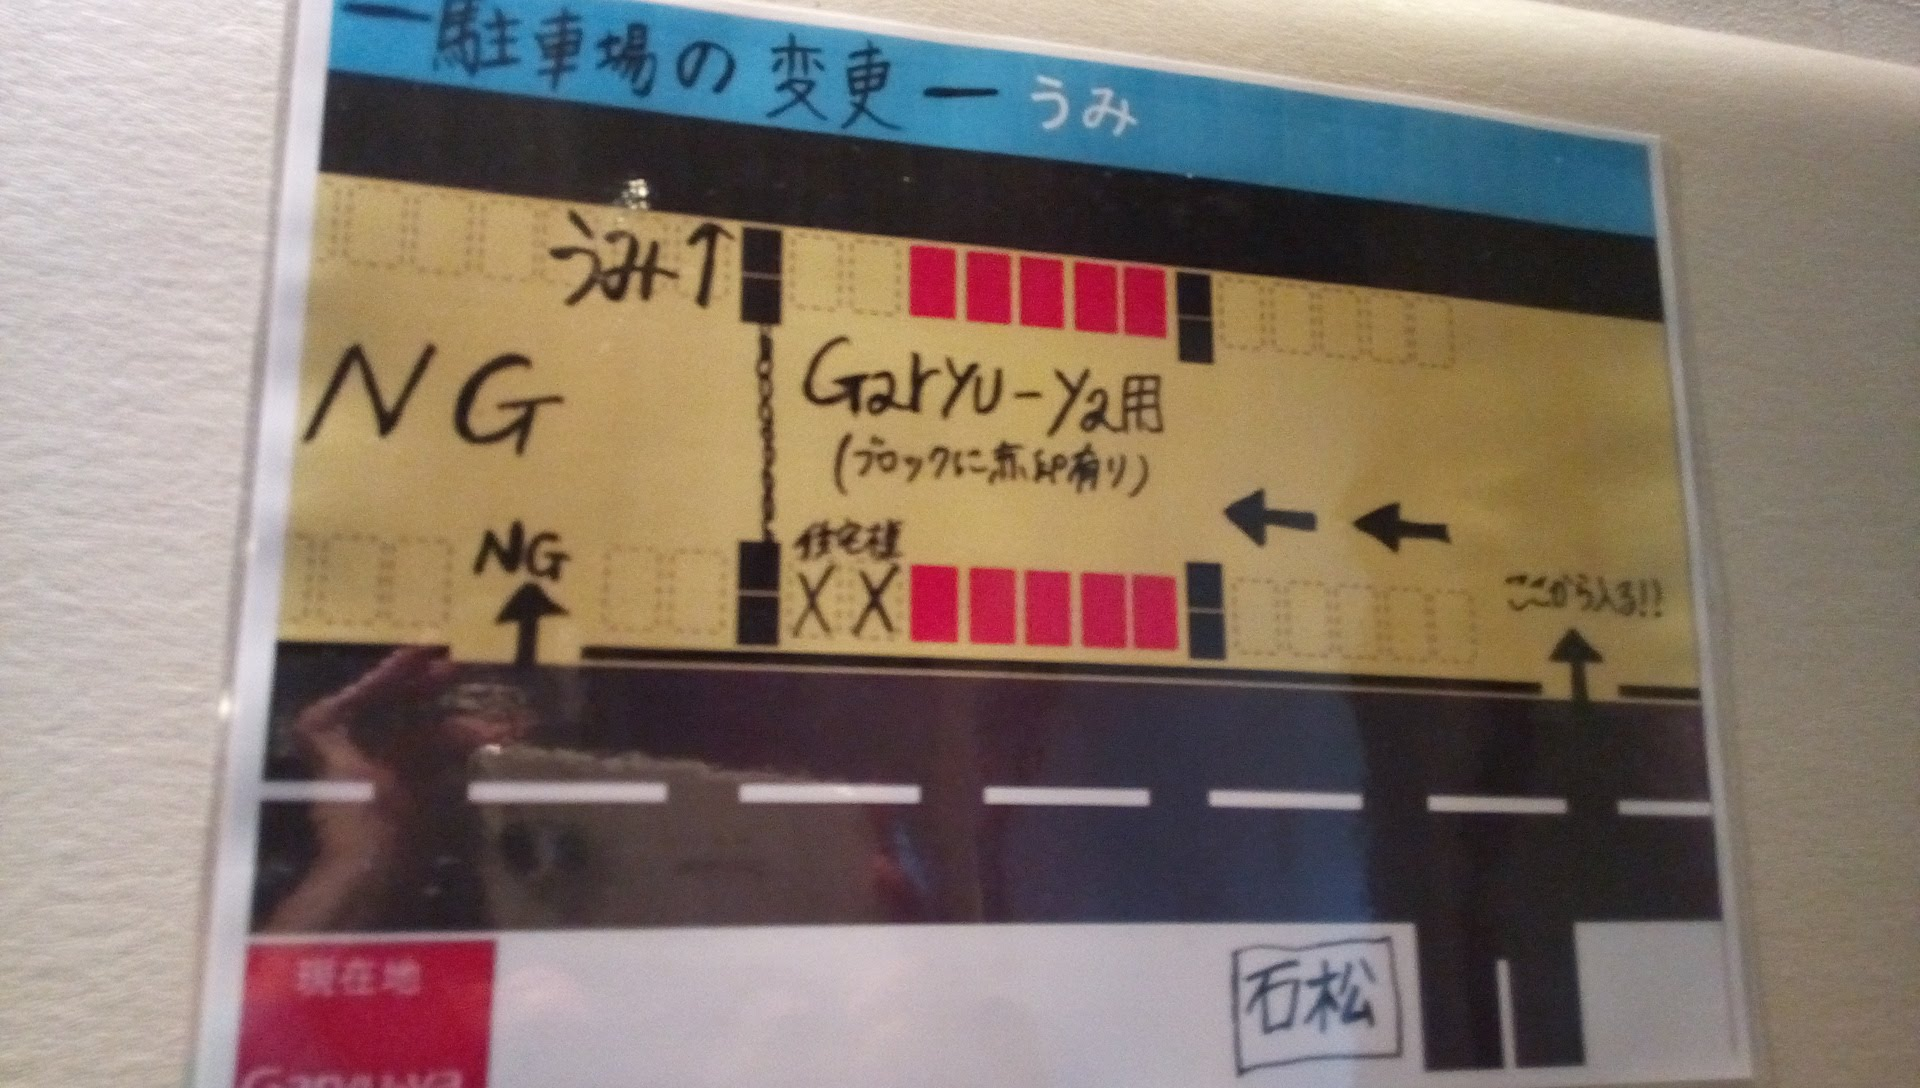 The parking lot of Garyu-ya